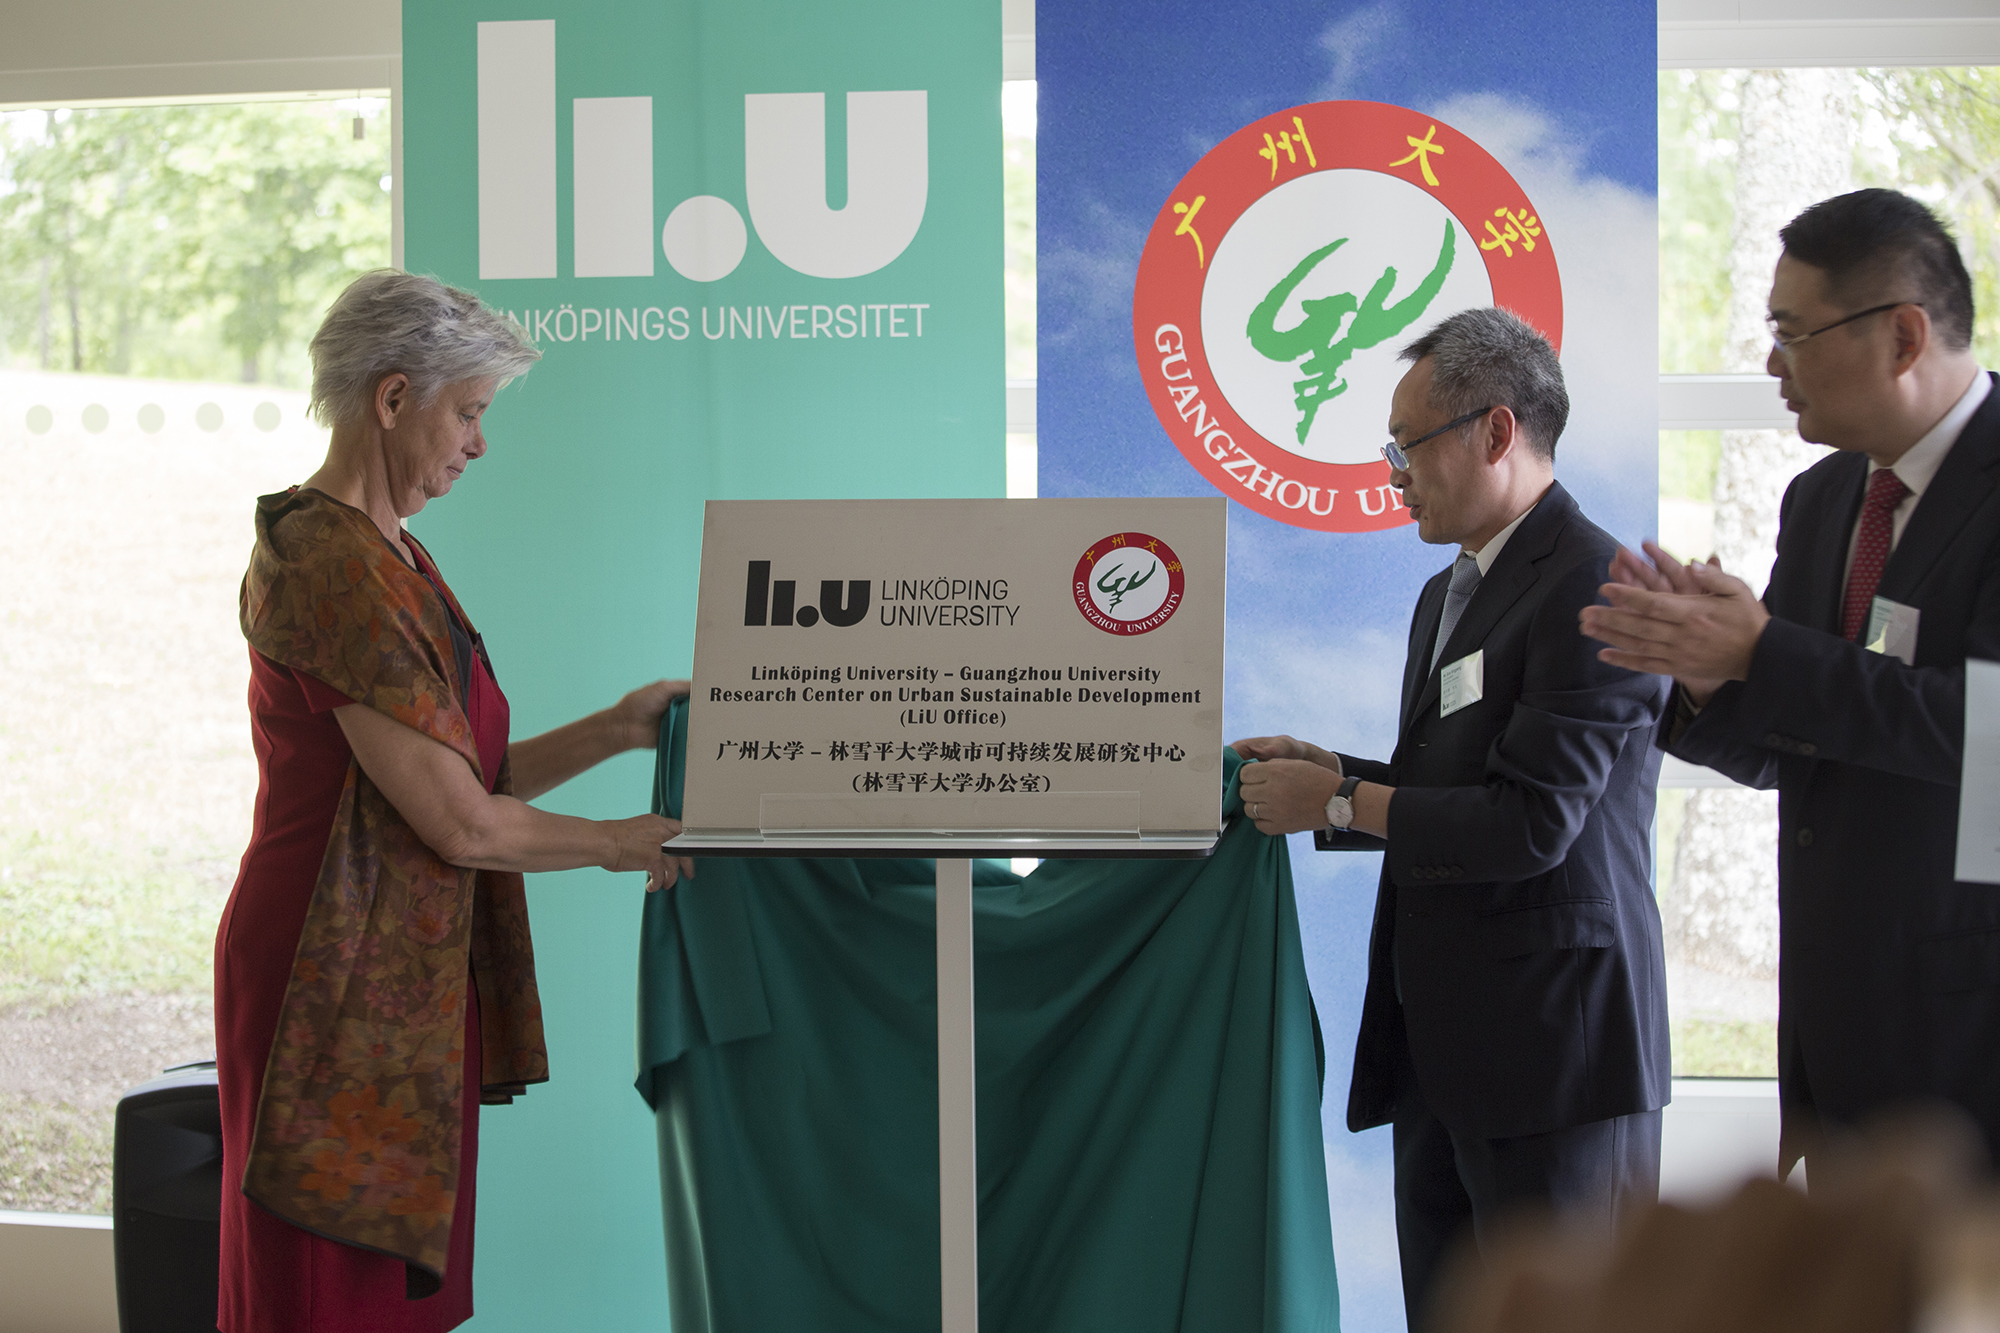 Unveiling the plaque on joint research center